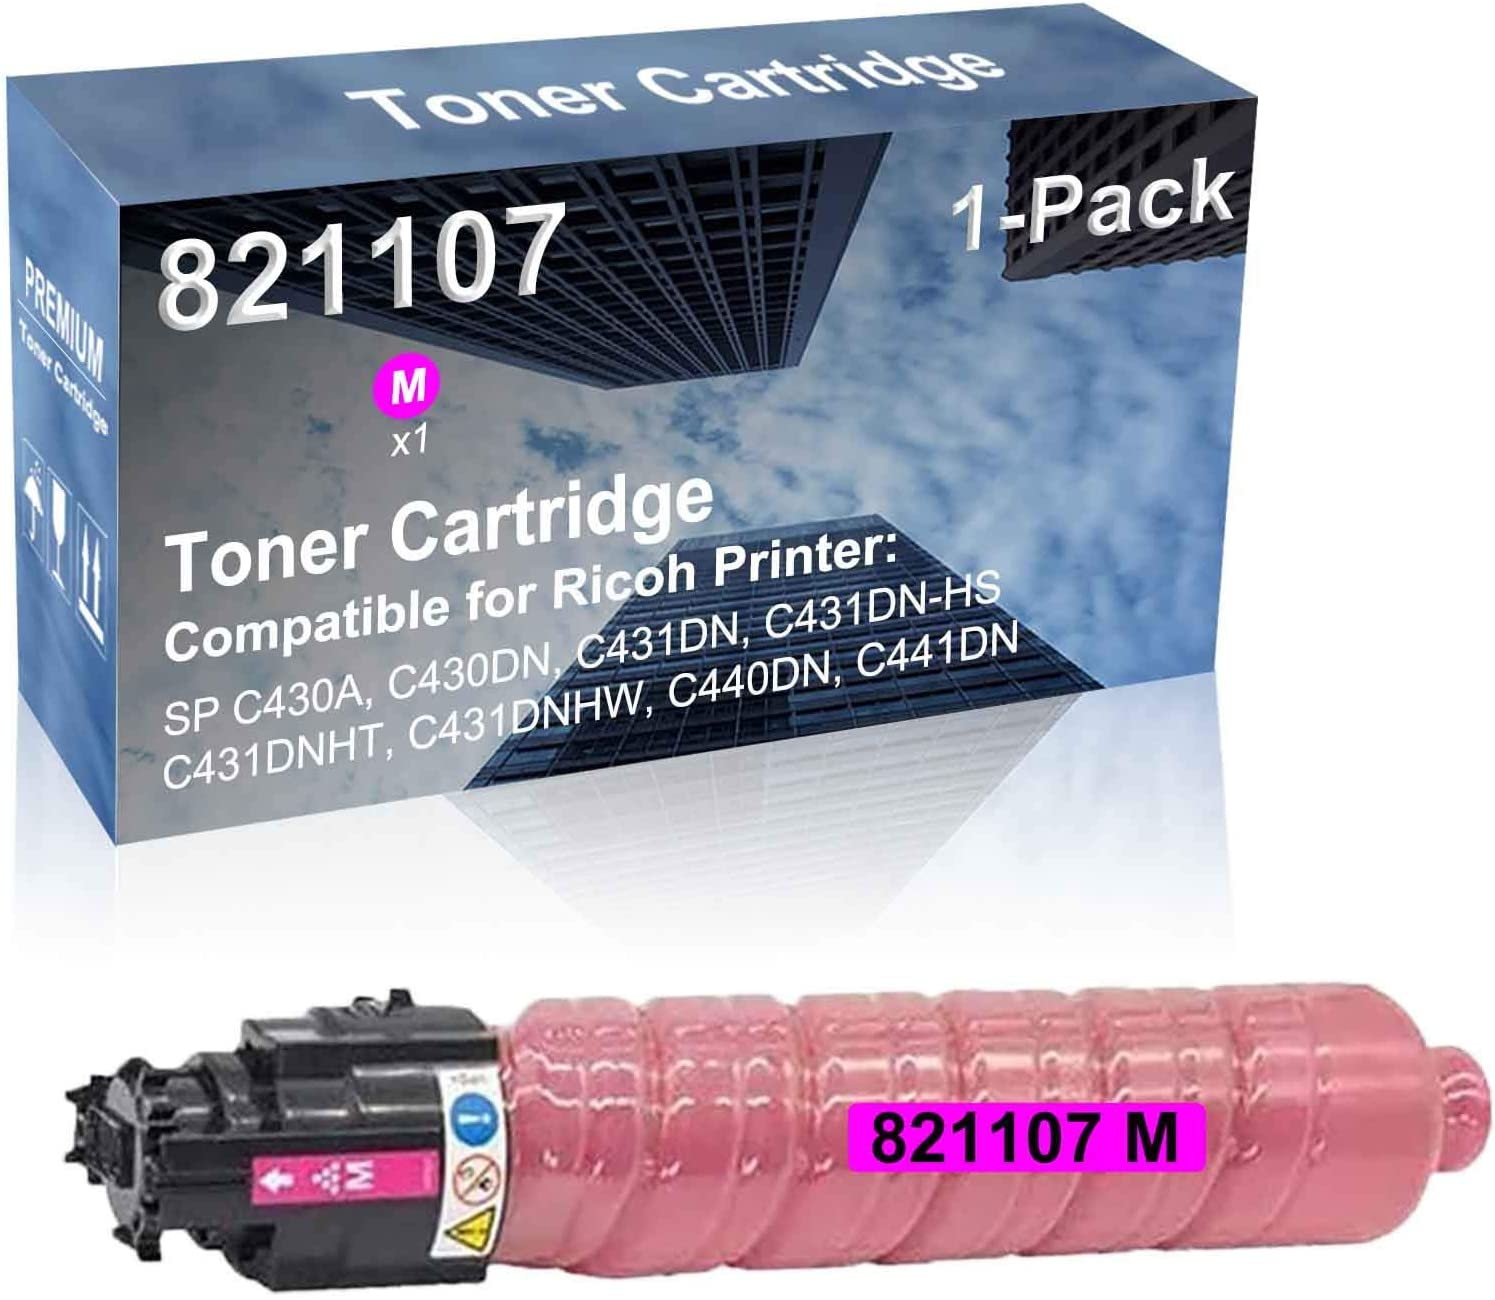 1-Pack (Magenta) Compatible SP C431DN-HS, SP C431DNHT, SP C431DNHW Printer Toner Cartridge High Capacity Replacement for Ricoh 821107 Toner Cartridge